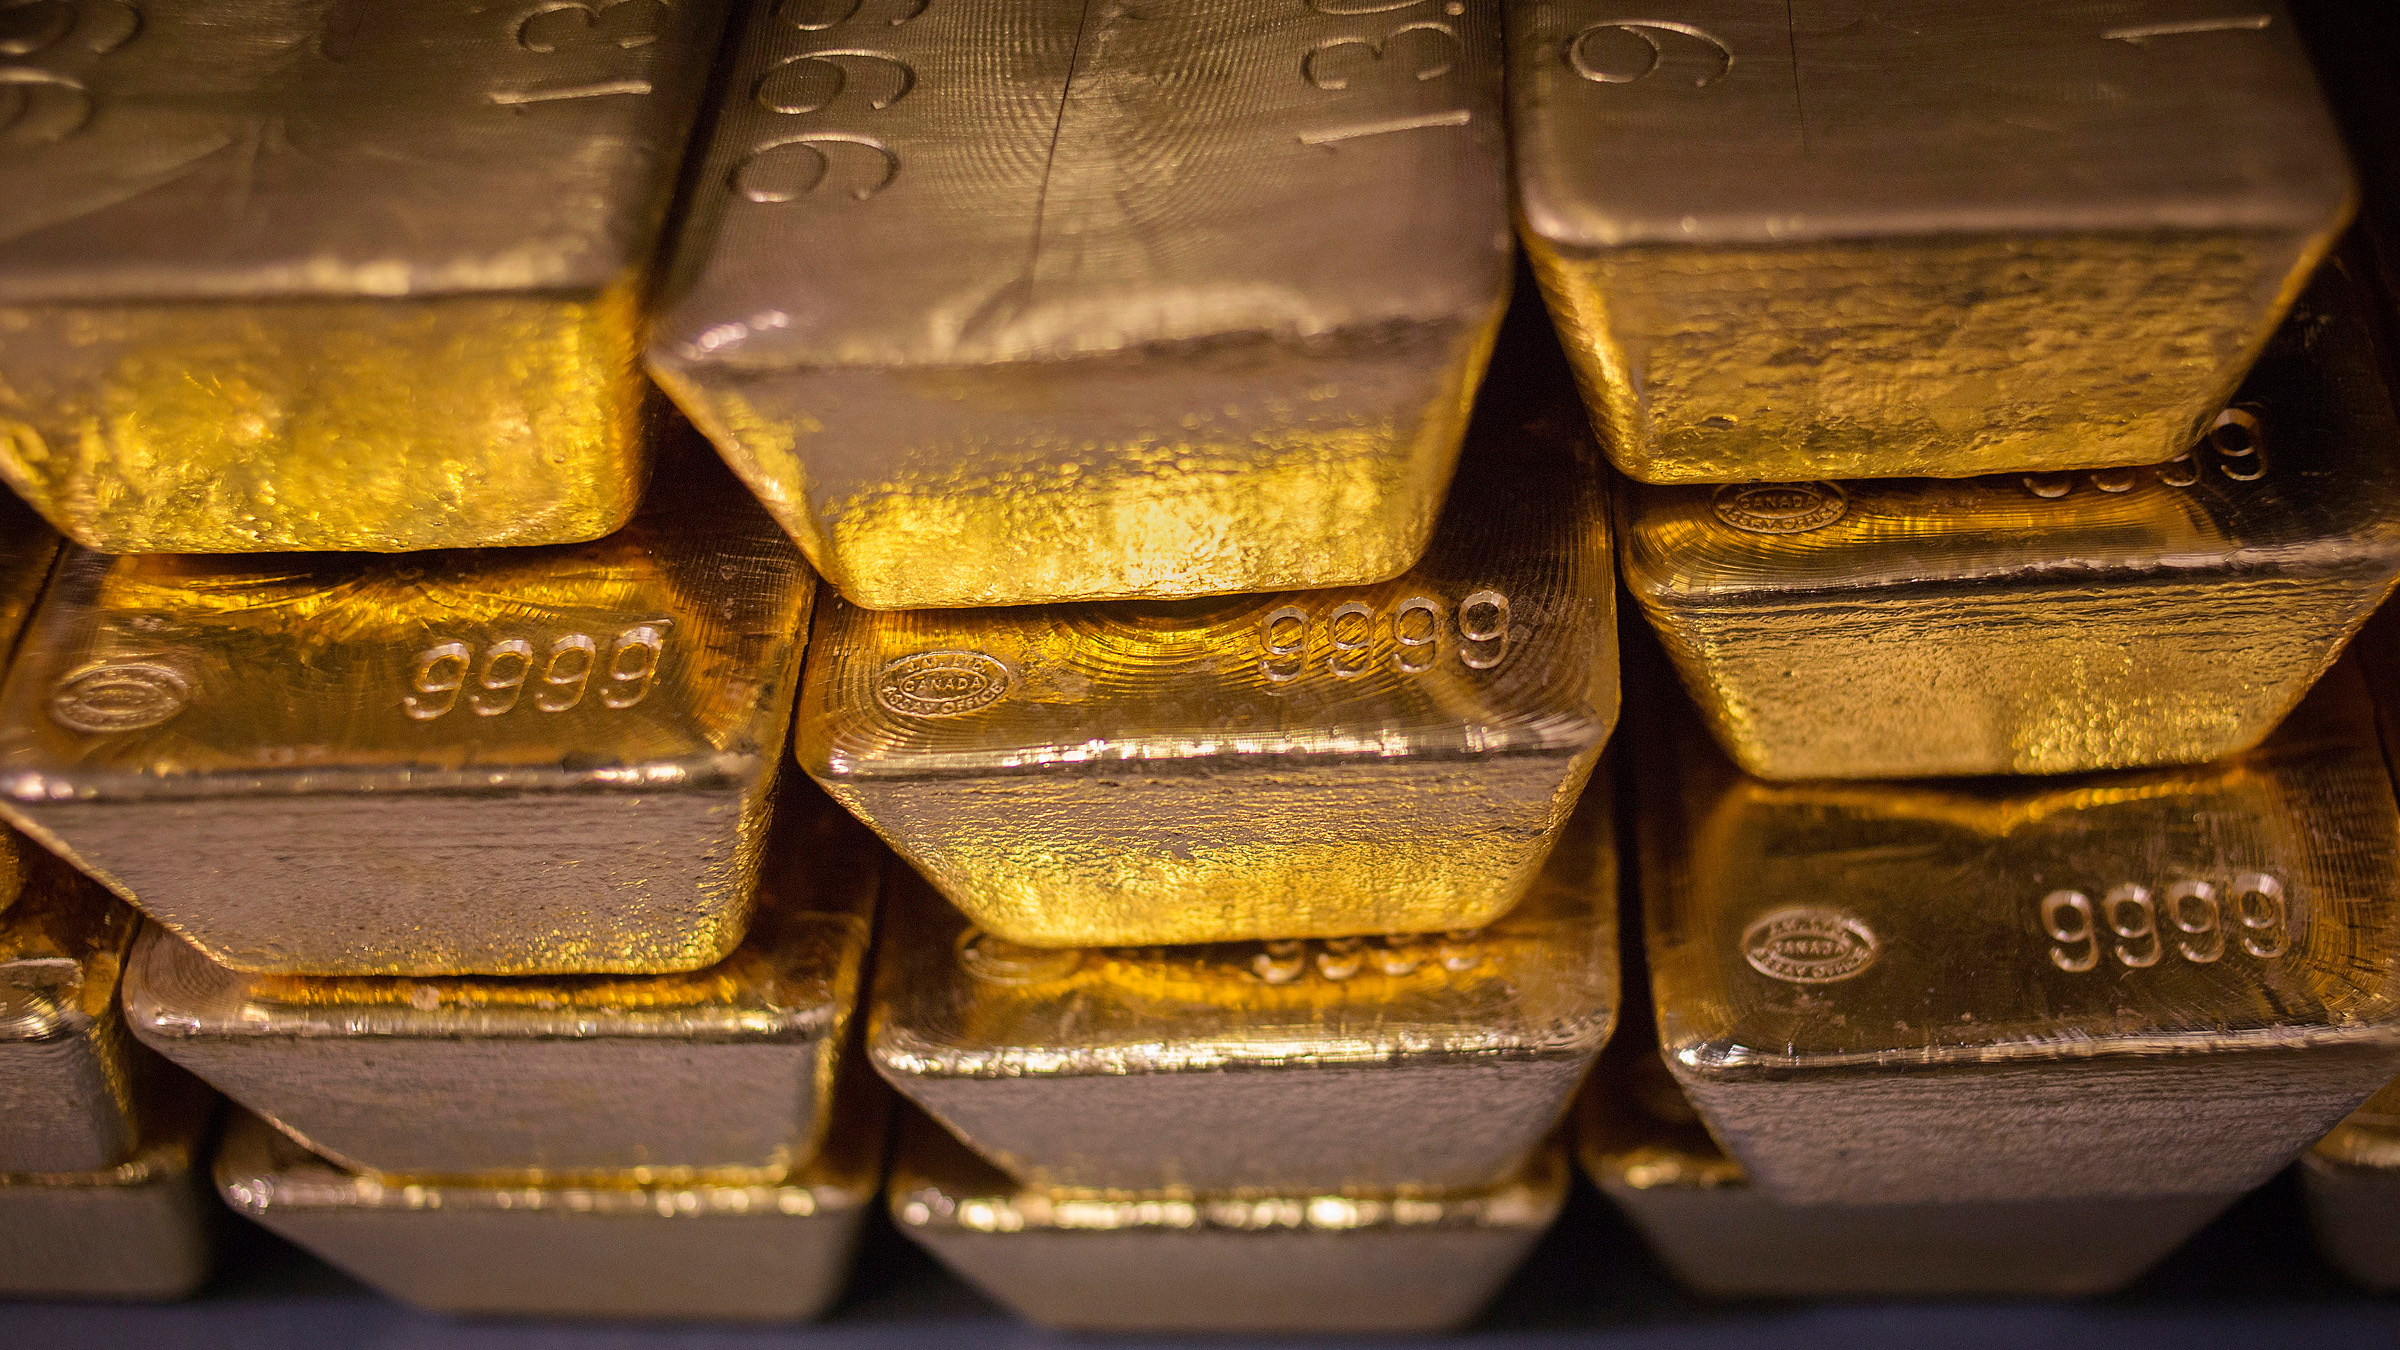 """Twenty four karat gold bars are seen at the United States West Point Mint facility in West Point, New York June 5, 2013. Demand for U.S. gold coins is still at """"unprecedented"""" high levels almost two months after an historic sell-off in gold released years of pent-up demand from retail investors, the head the U.S. Mint said on Wednesday."""